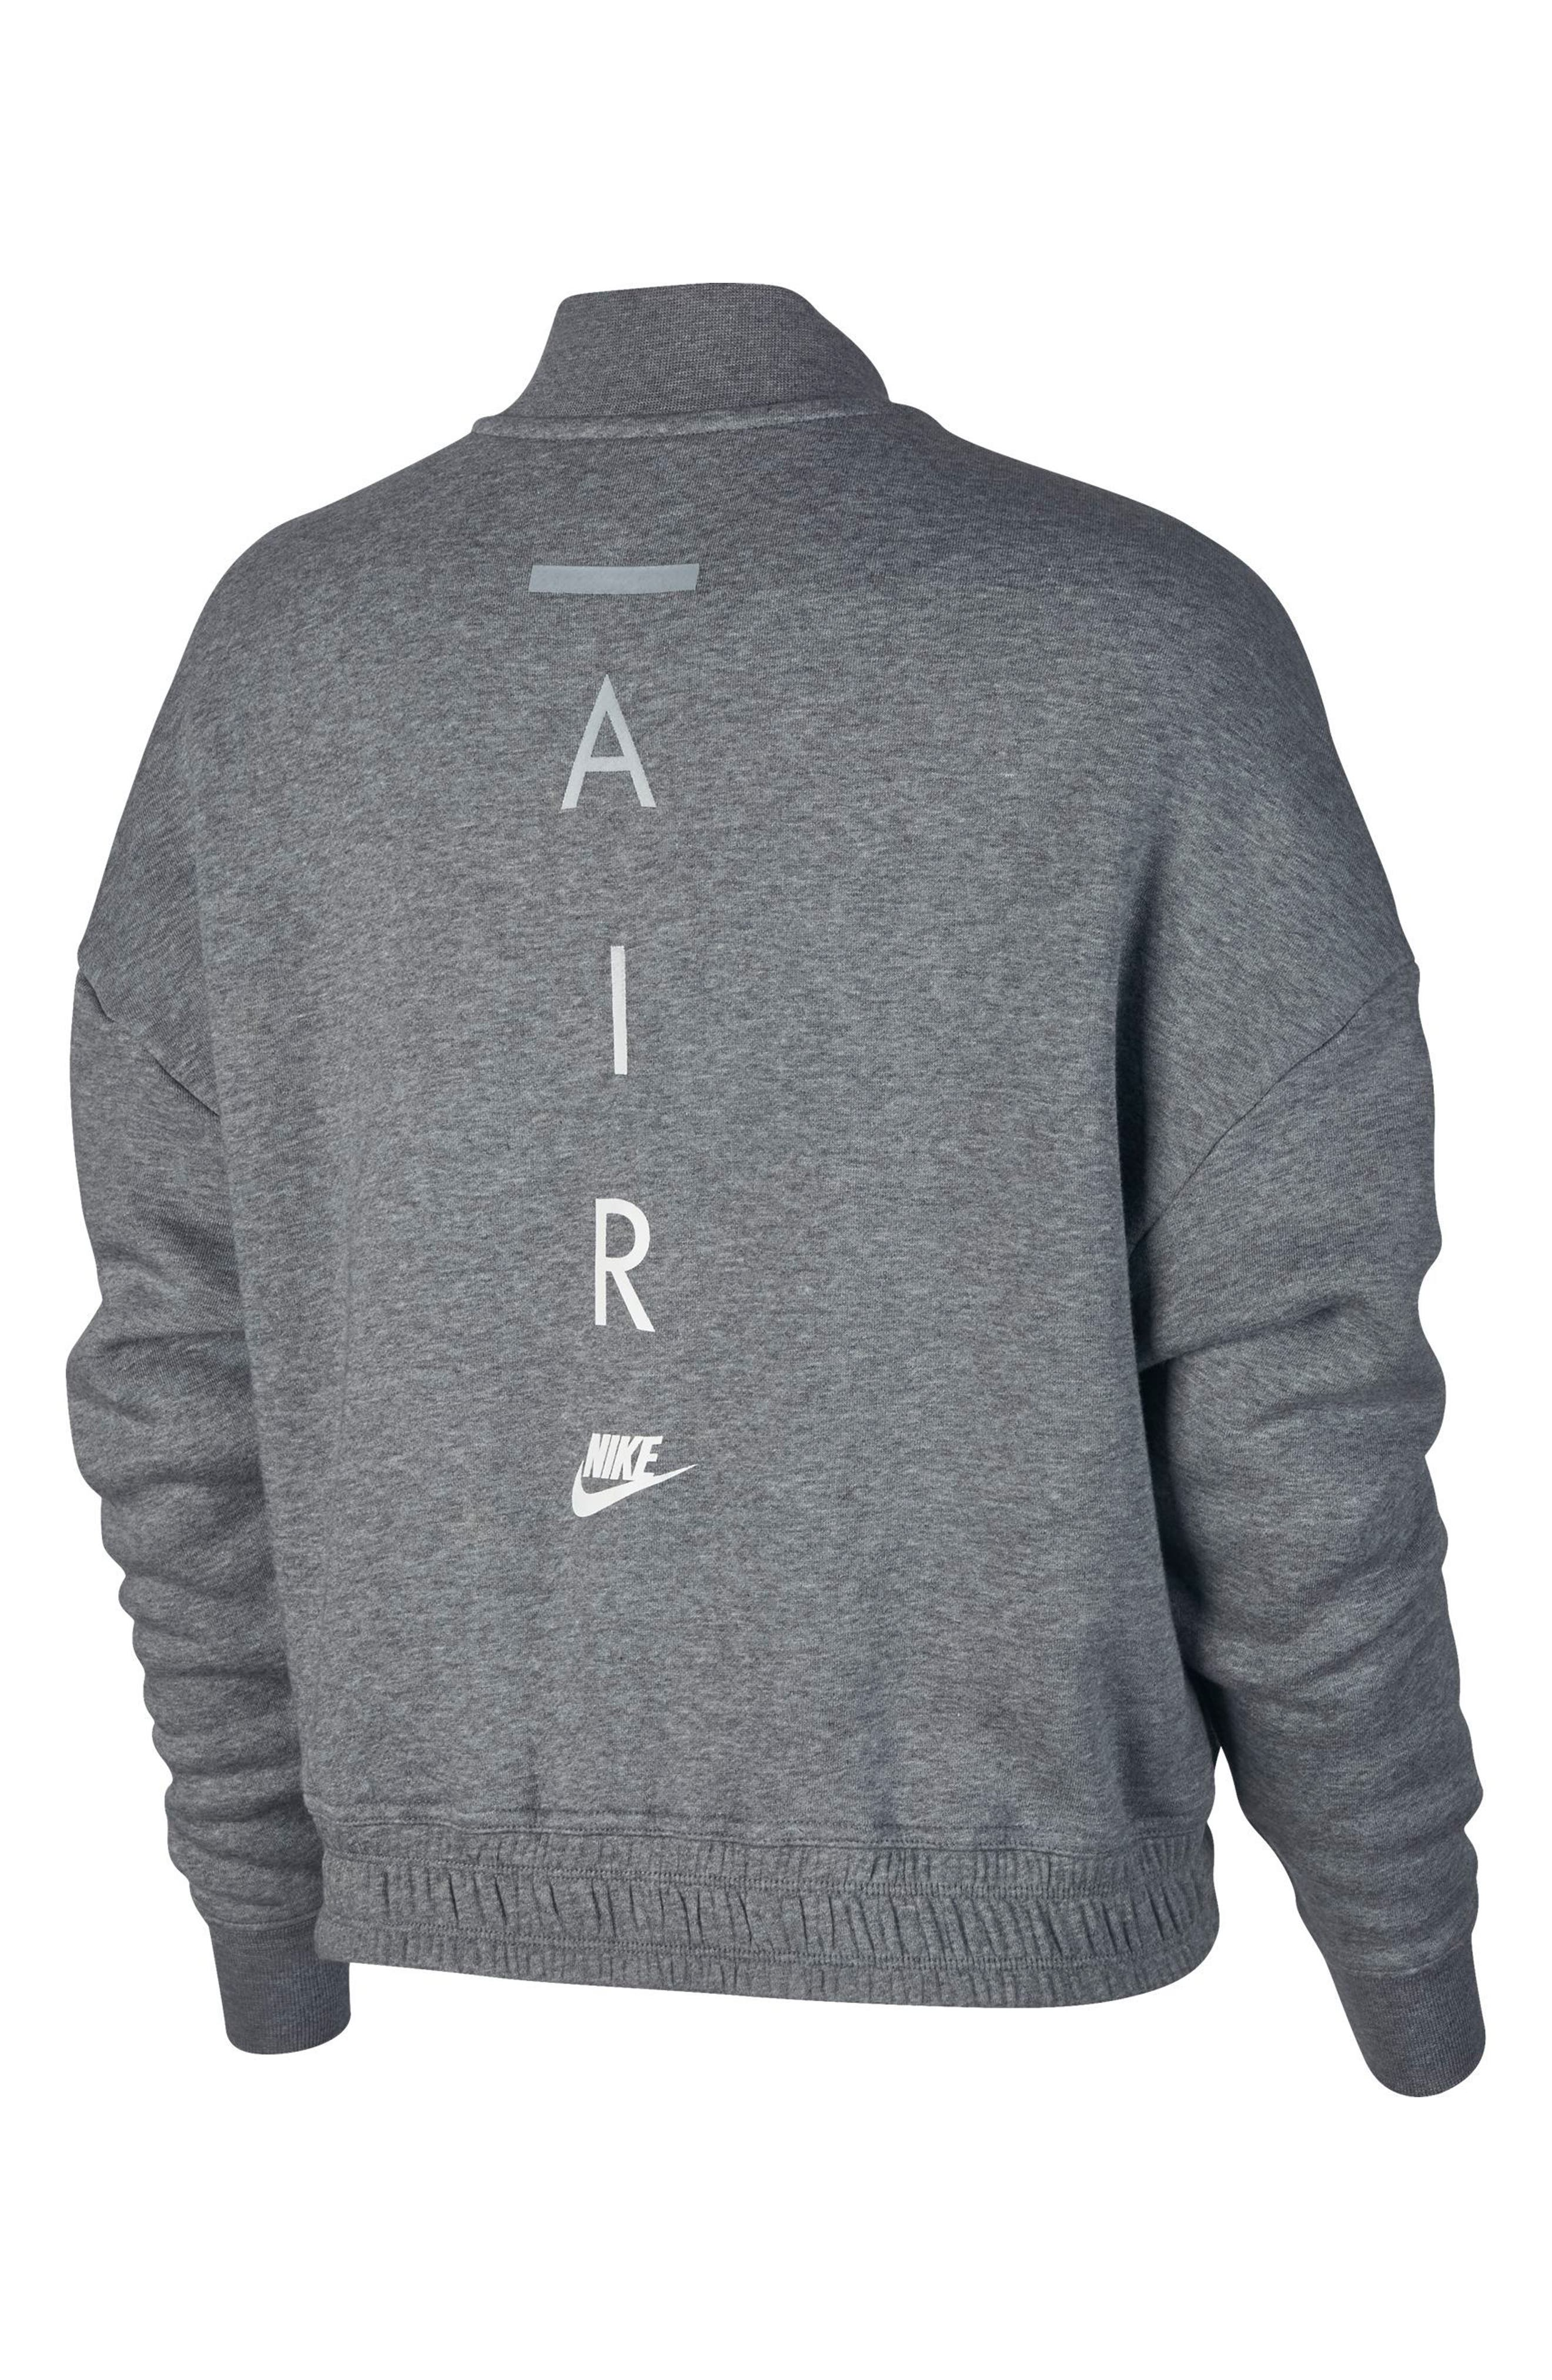 Sportswear Rally Jacket,                             Alternate thumbnail 7, color,                             Carbon Heather/ Cool Grey